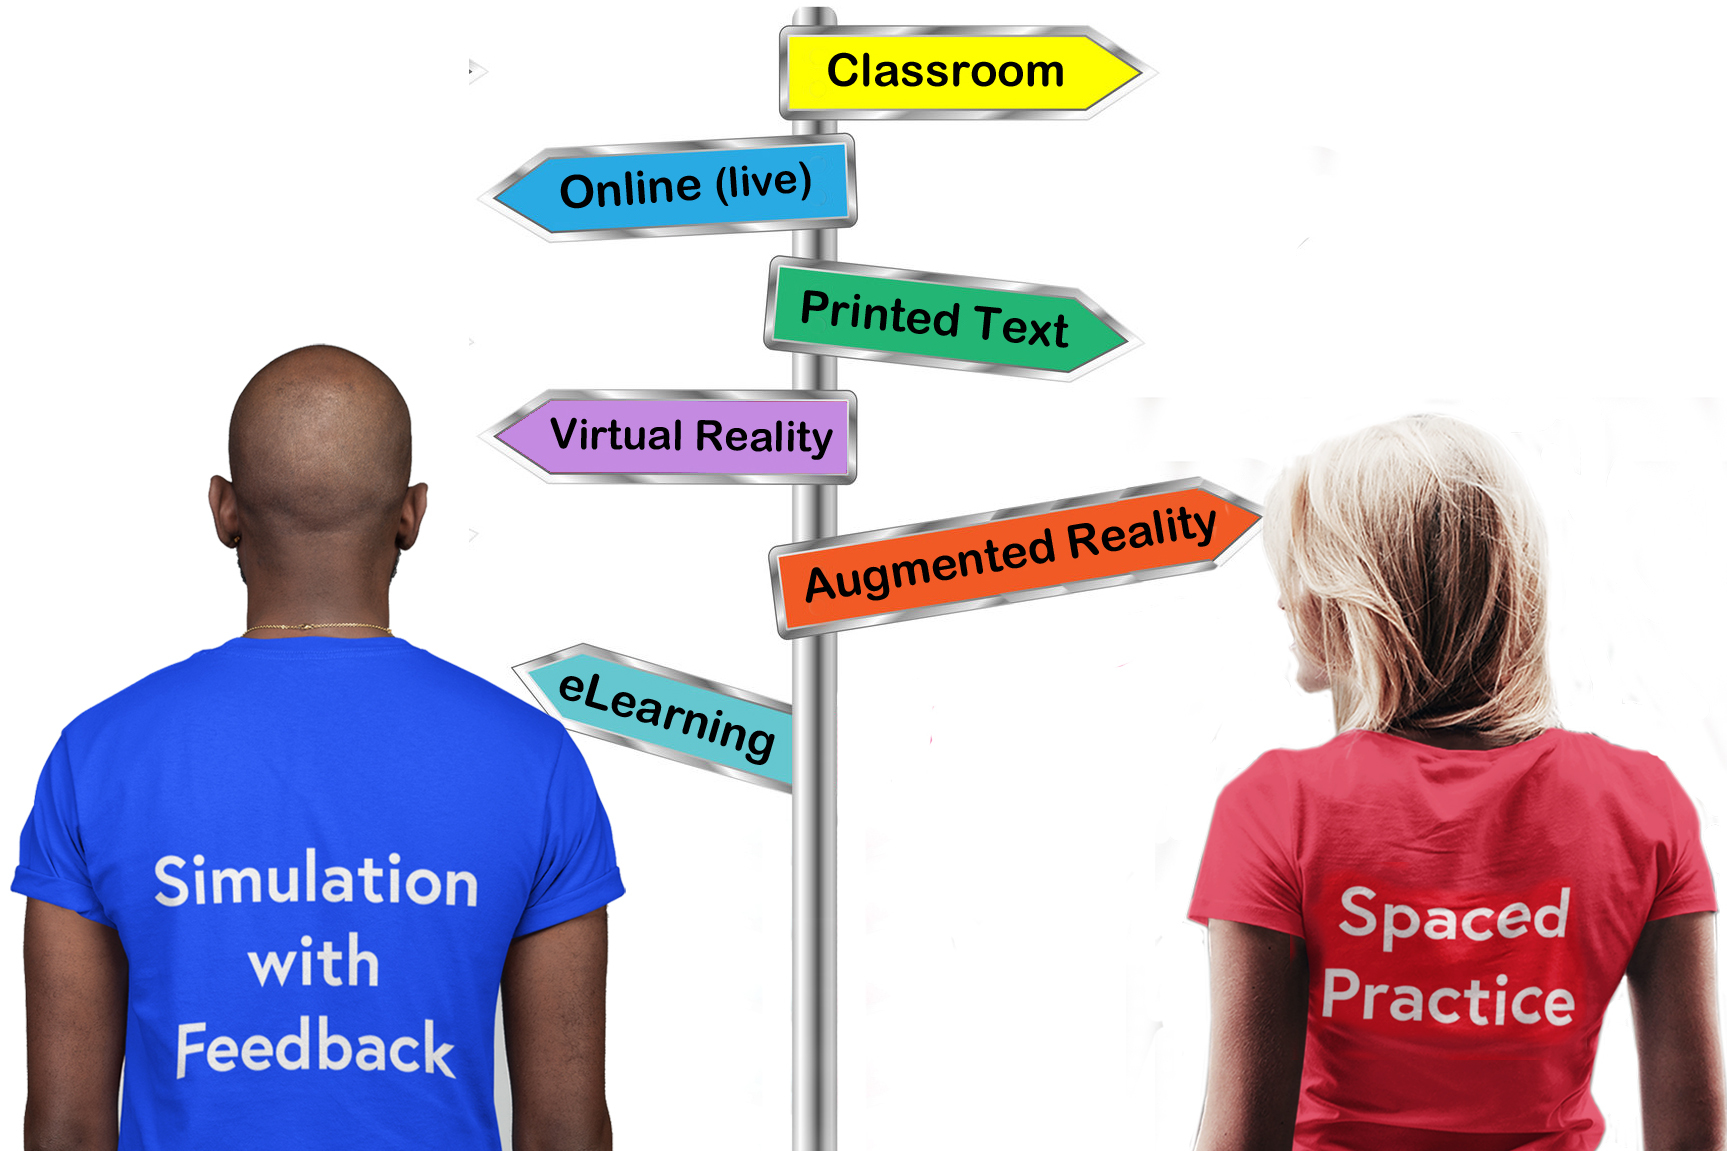 Image shows two people, one has 'Simulation' on his back, the other has 'Spaced practice on her back. They are looking at a finger post with fifferent delivery routes.